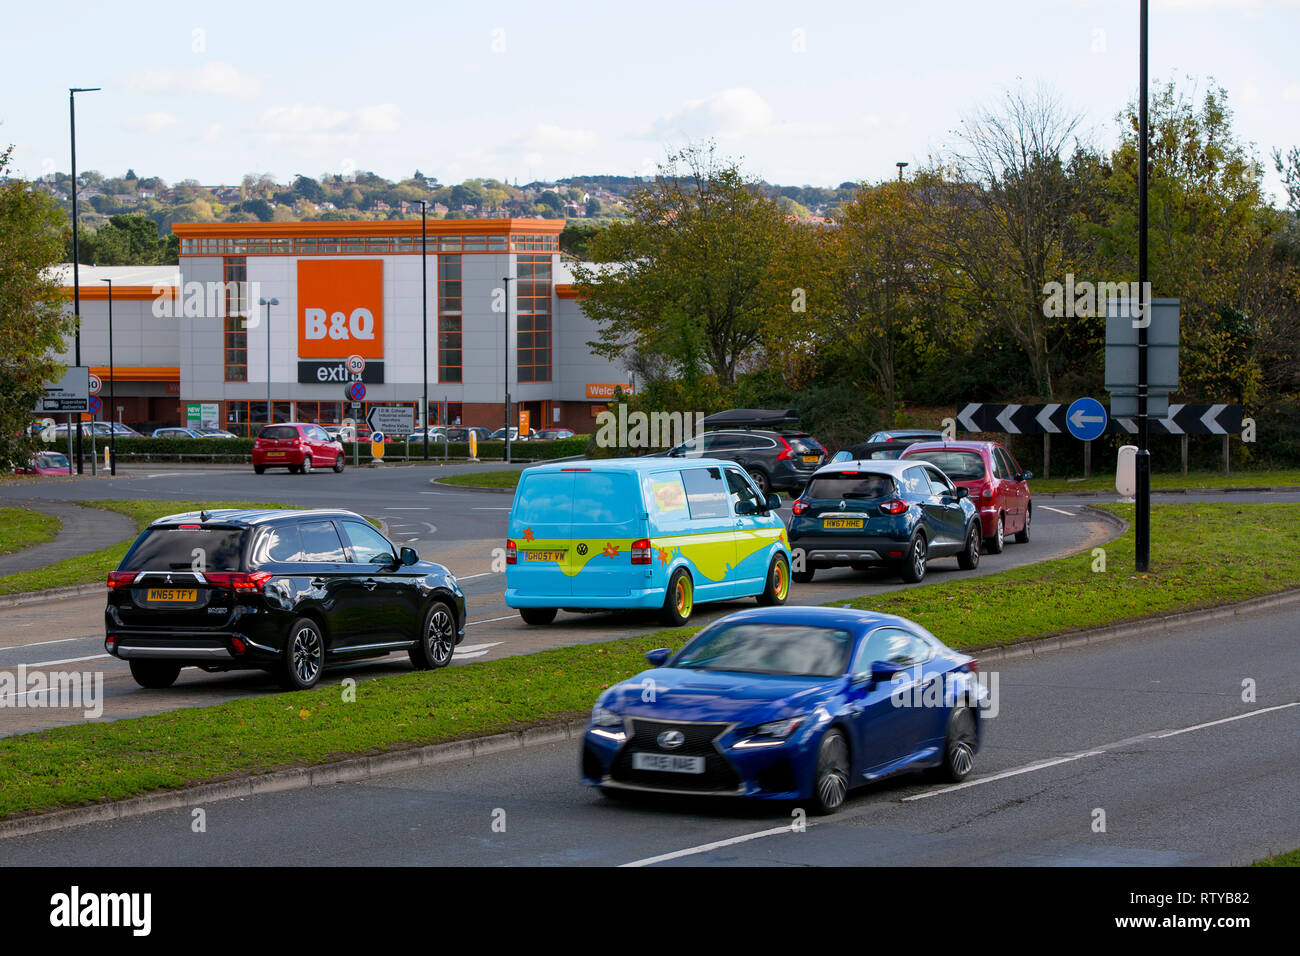 B&Q, St Mary's Roundabout, Duel chaussée, Newport, Isle of Wight, Angleterre, Royaume-Uni, Photo Stock